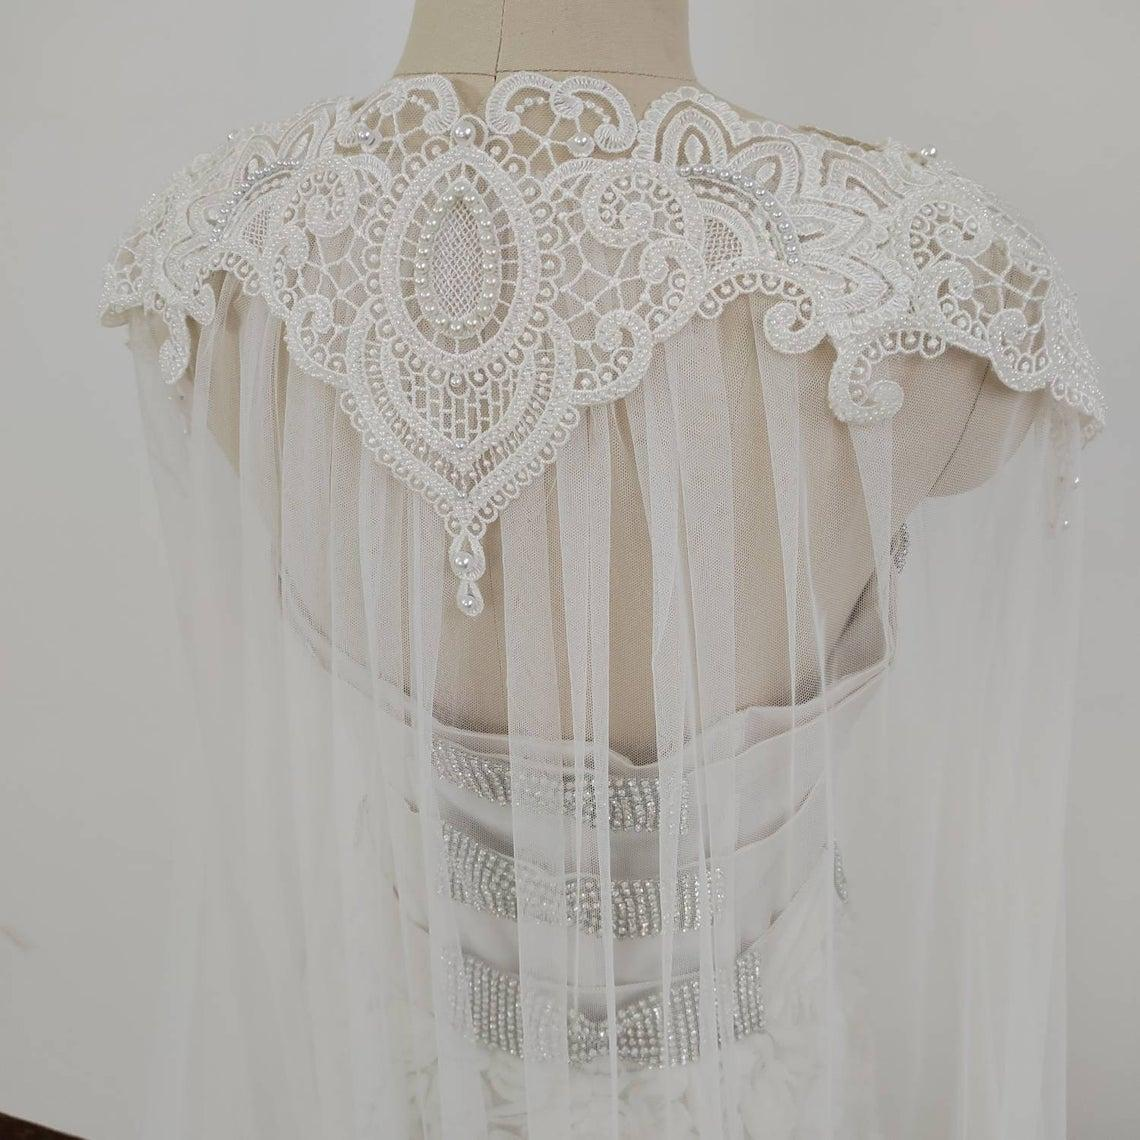 Luxury 120 inches wedding cape veil sew beaded lace, pearl cape, 3 meters large bridal Cape, Shoulders Shawl, Cover Ups, white bridal cape31